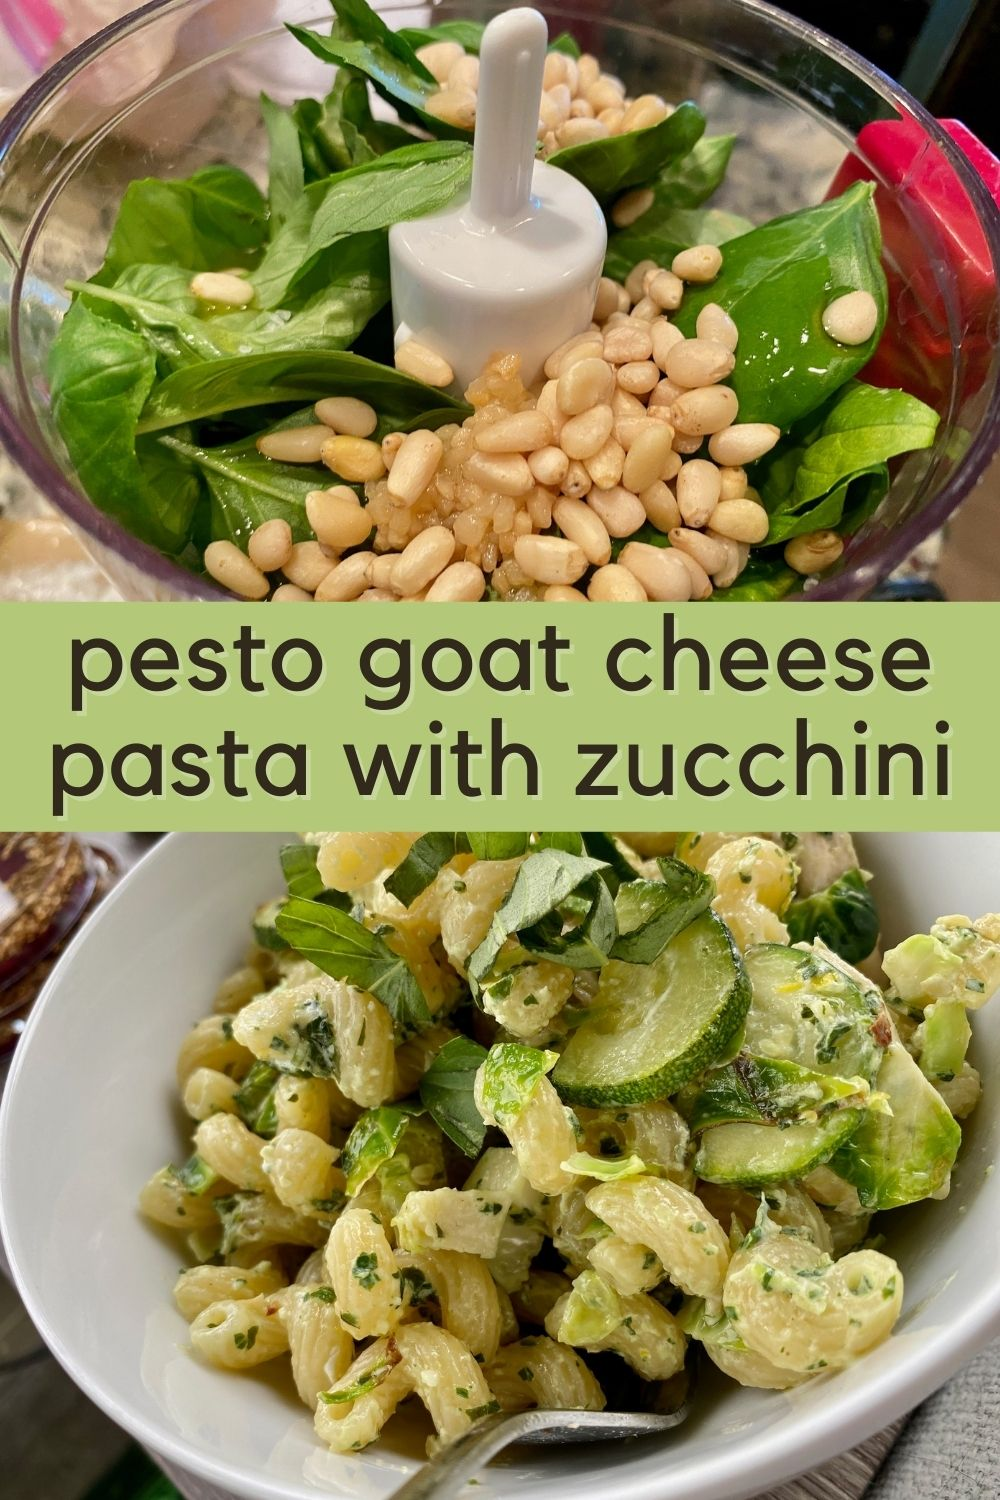 Pesto Goat Cheese Pasta with Zucchini   This is a perfect summer pasta, full of summer's fresh produce, with fresh basil and zucchini in a tangy light sauce. Ready in less than 30 minutes, a super easy vegetarian dinner recipe, perfect for meatless Monday. Easy pasta recipe. #pasta #pesto #goatcheese #zucchini #summerrecipe #30minutemeal